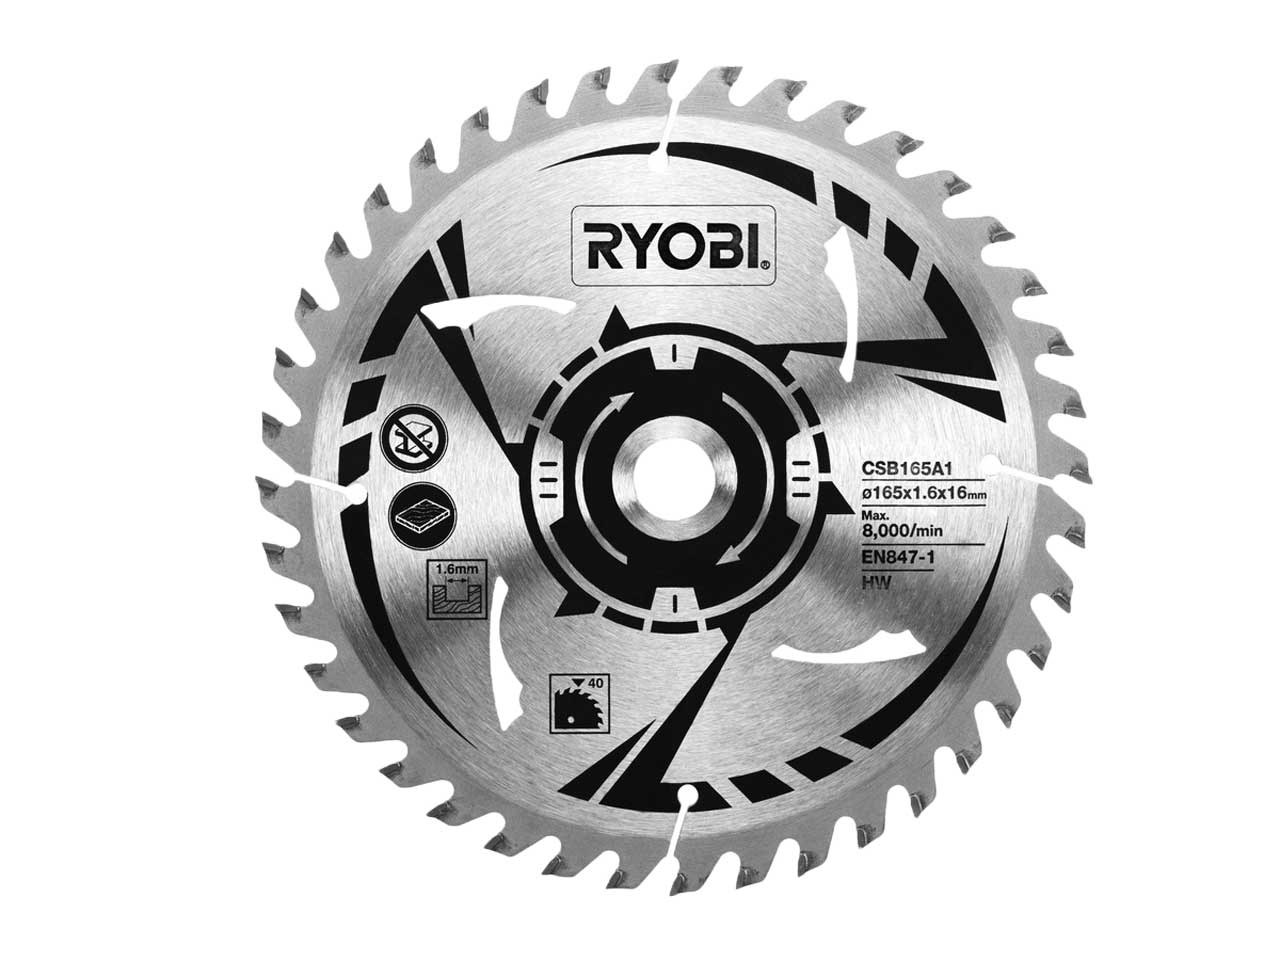 Ryobi csb165a1 165mm circular saw blade keyboard keysfo